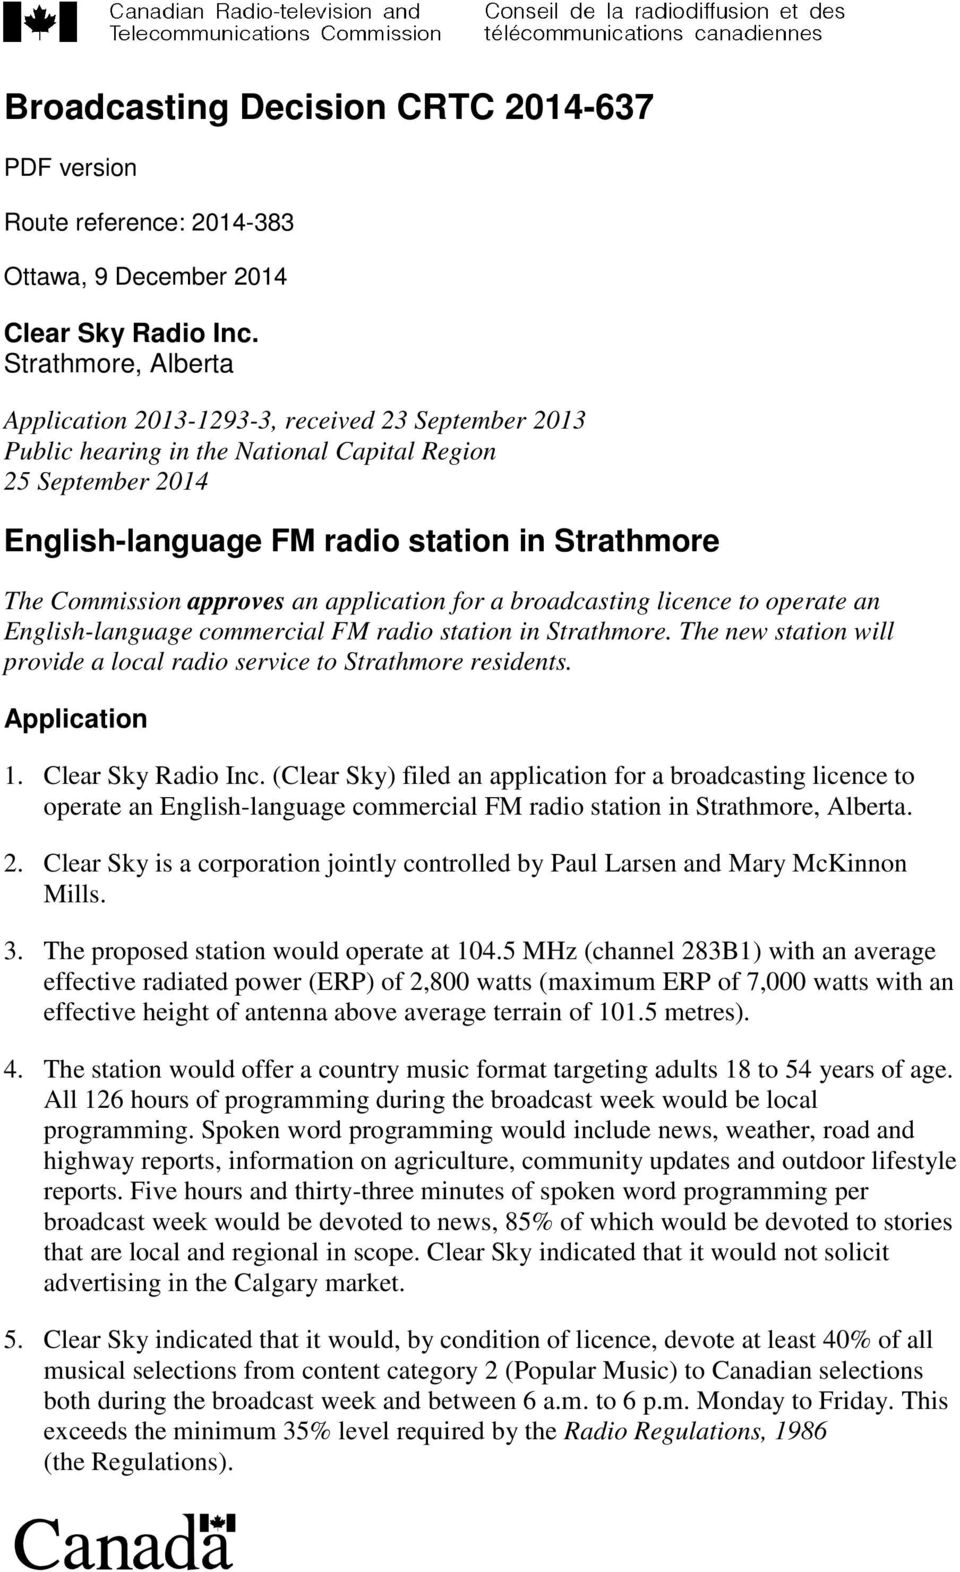 approves an application for a broadcasting licence to operate an English-language commercial FM radio station in Strathmore. The new station will provide a local radio service to Strathmore residents.